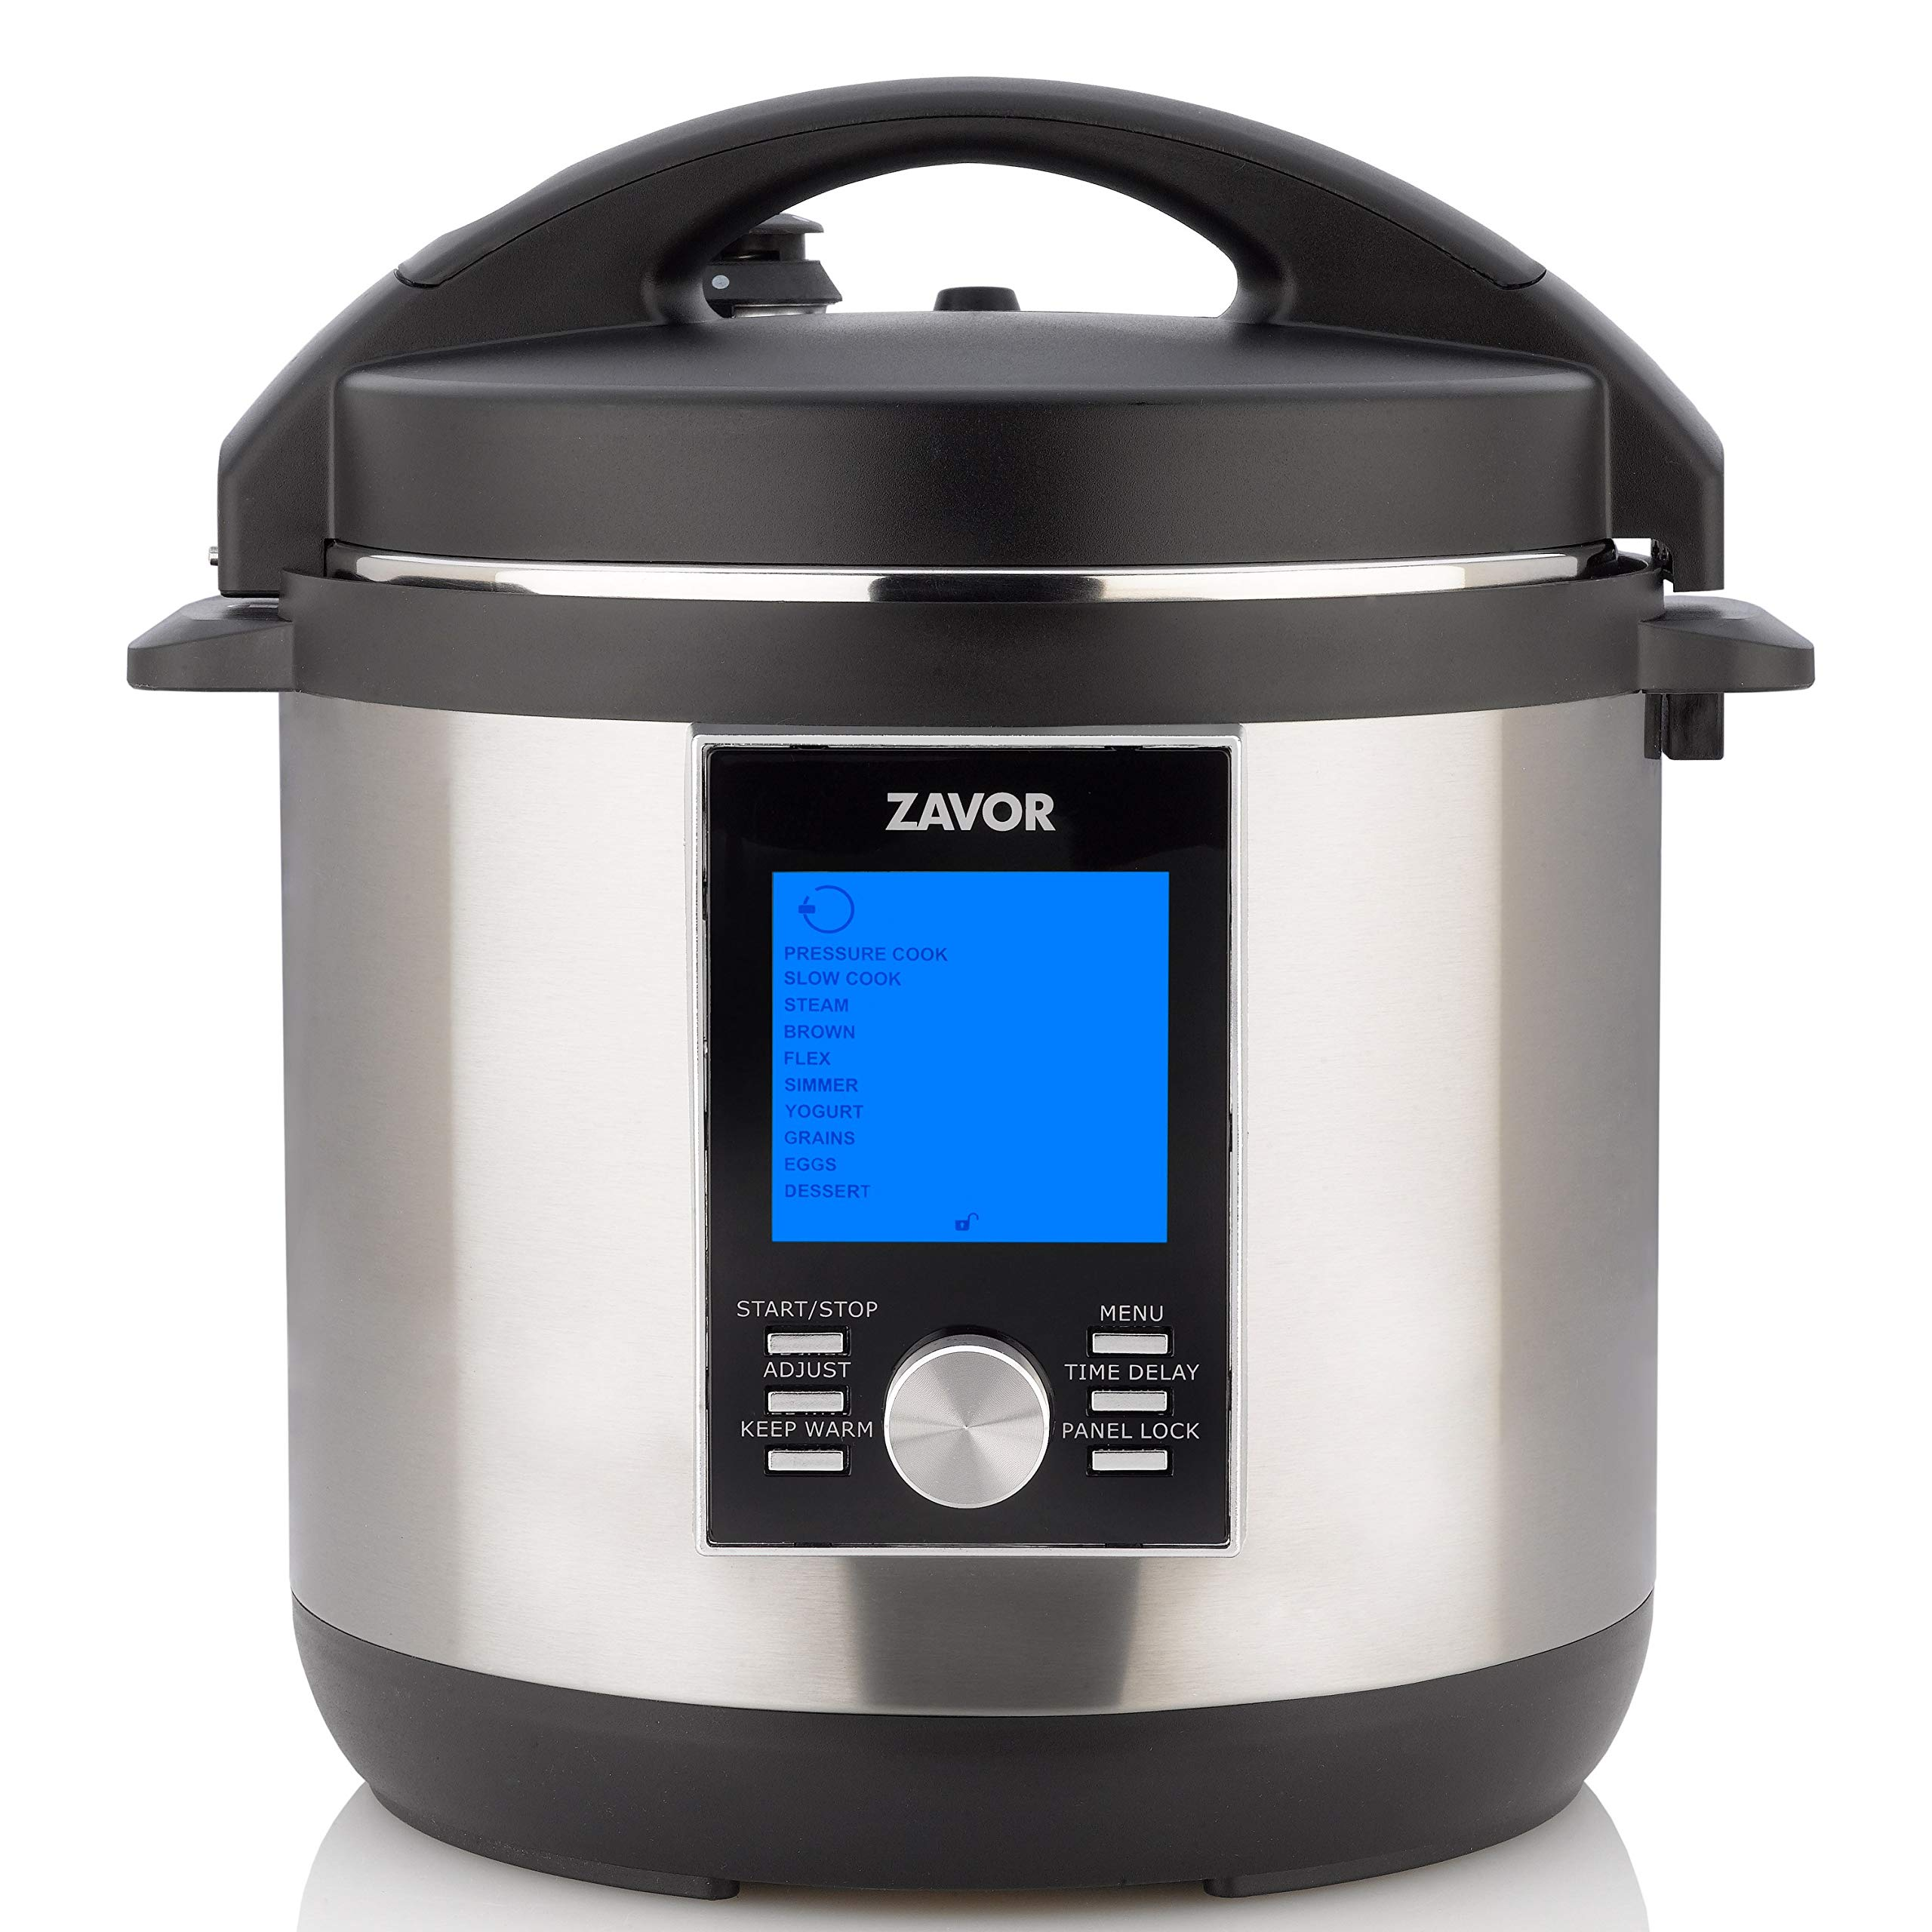 Zavor LUX LCD 6 Quart Programmable Electric Multi-Cooker: Pressure Cooker, Slow Cooker, Rice Cooker, Yogurt Maker, Steamer and more - Stainless Steel (ZSELL02)